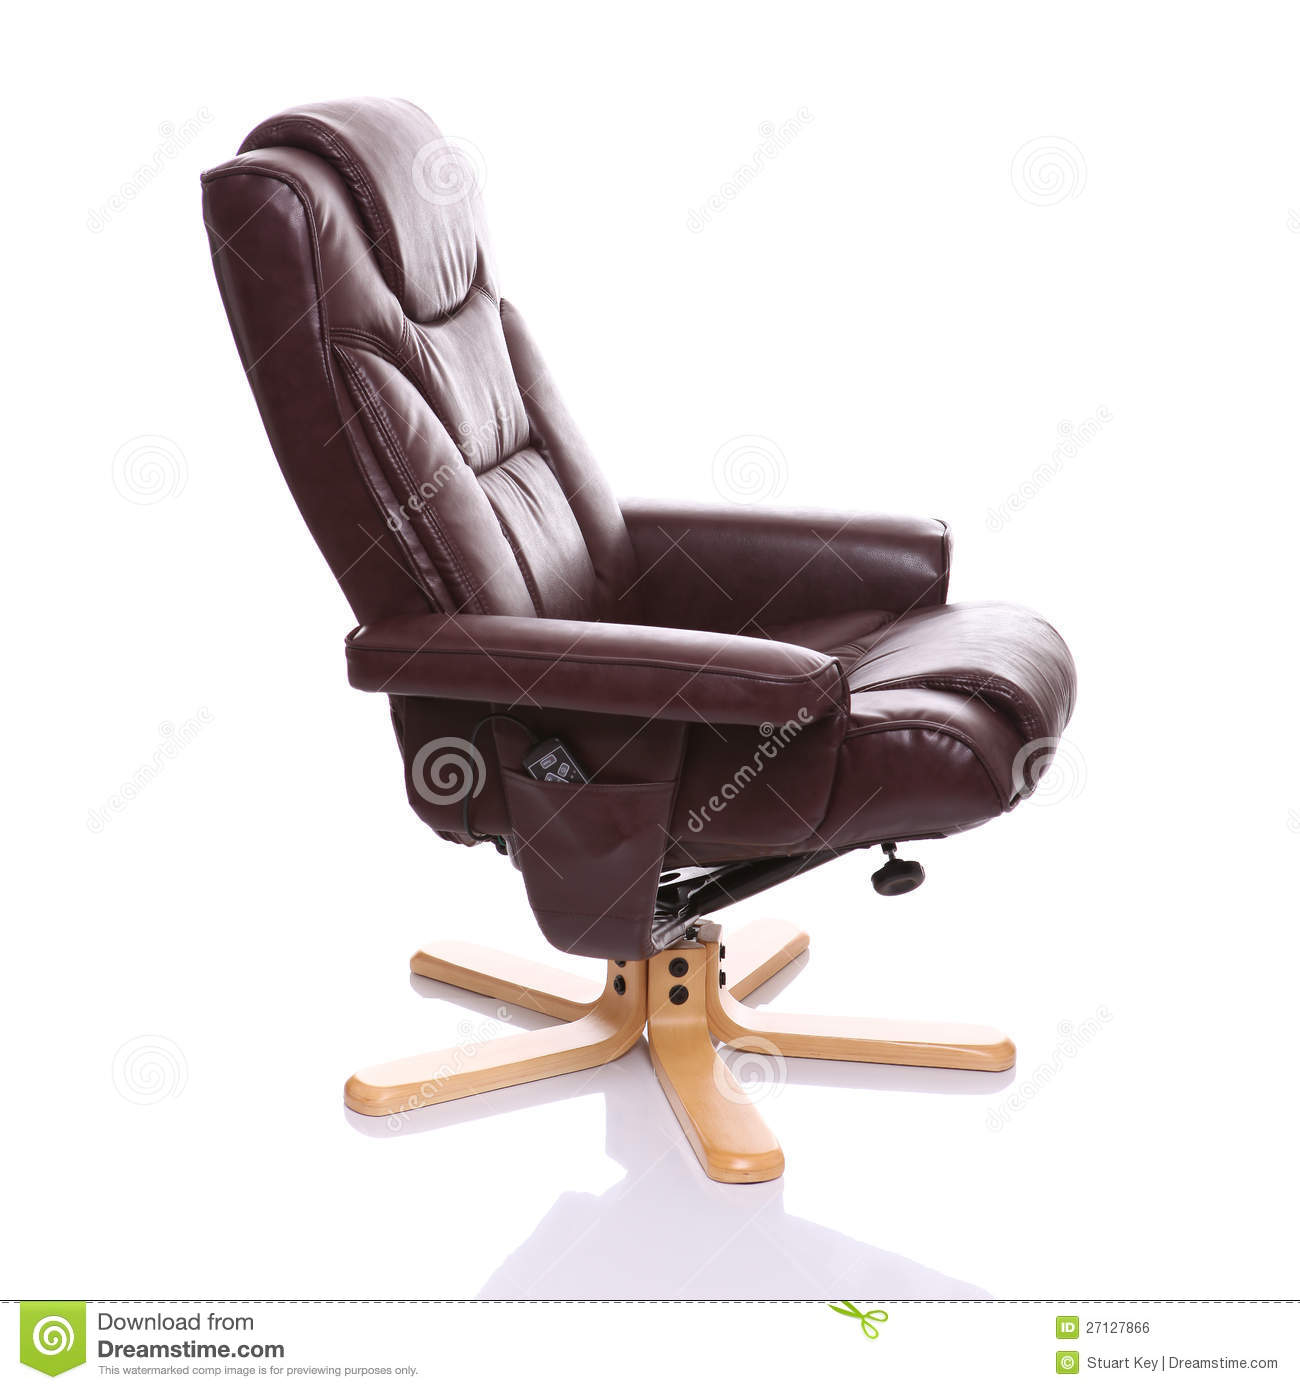 upright recliner chairs desk chair cb2 brown leather royalty free stock image